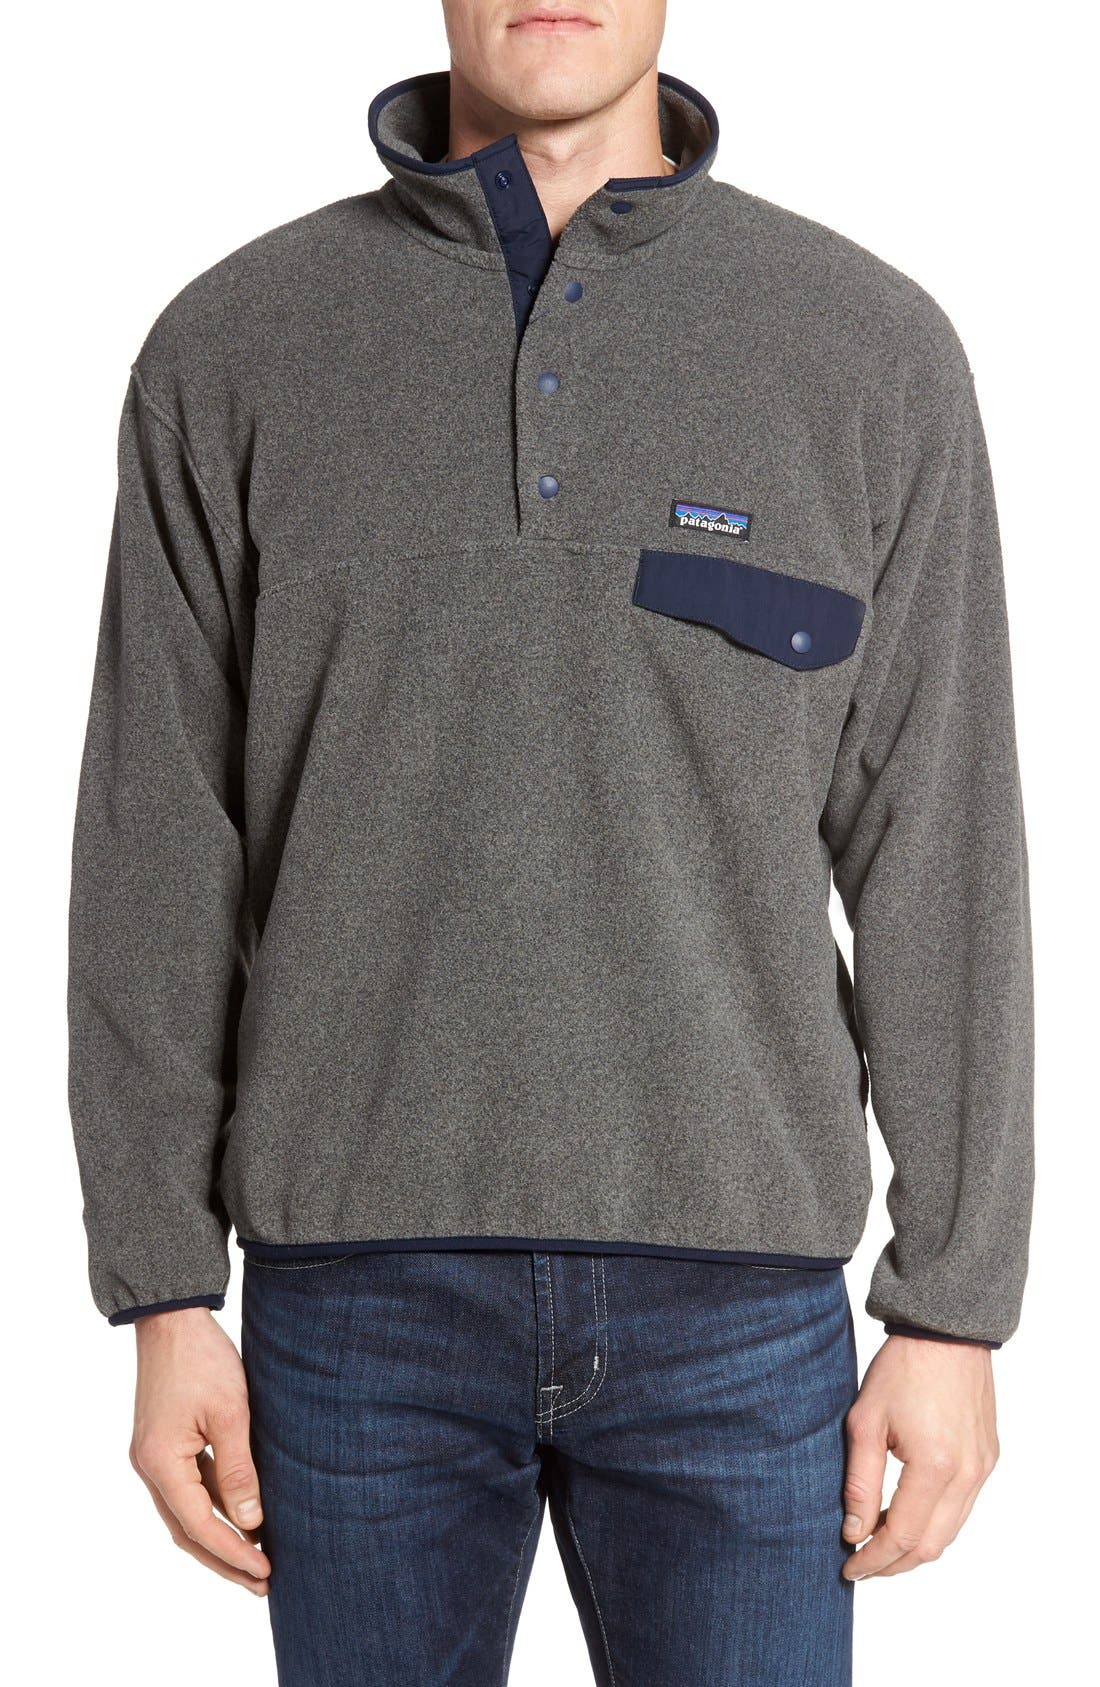 Synchilla<sup>®</sup> Snap-T<sup>®</sup> Pullover,                             Main thumbnail 1, color,                             Nickel/ Navy Blue